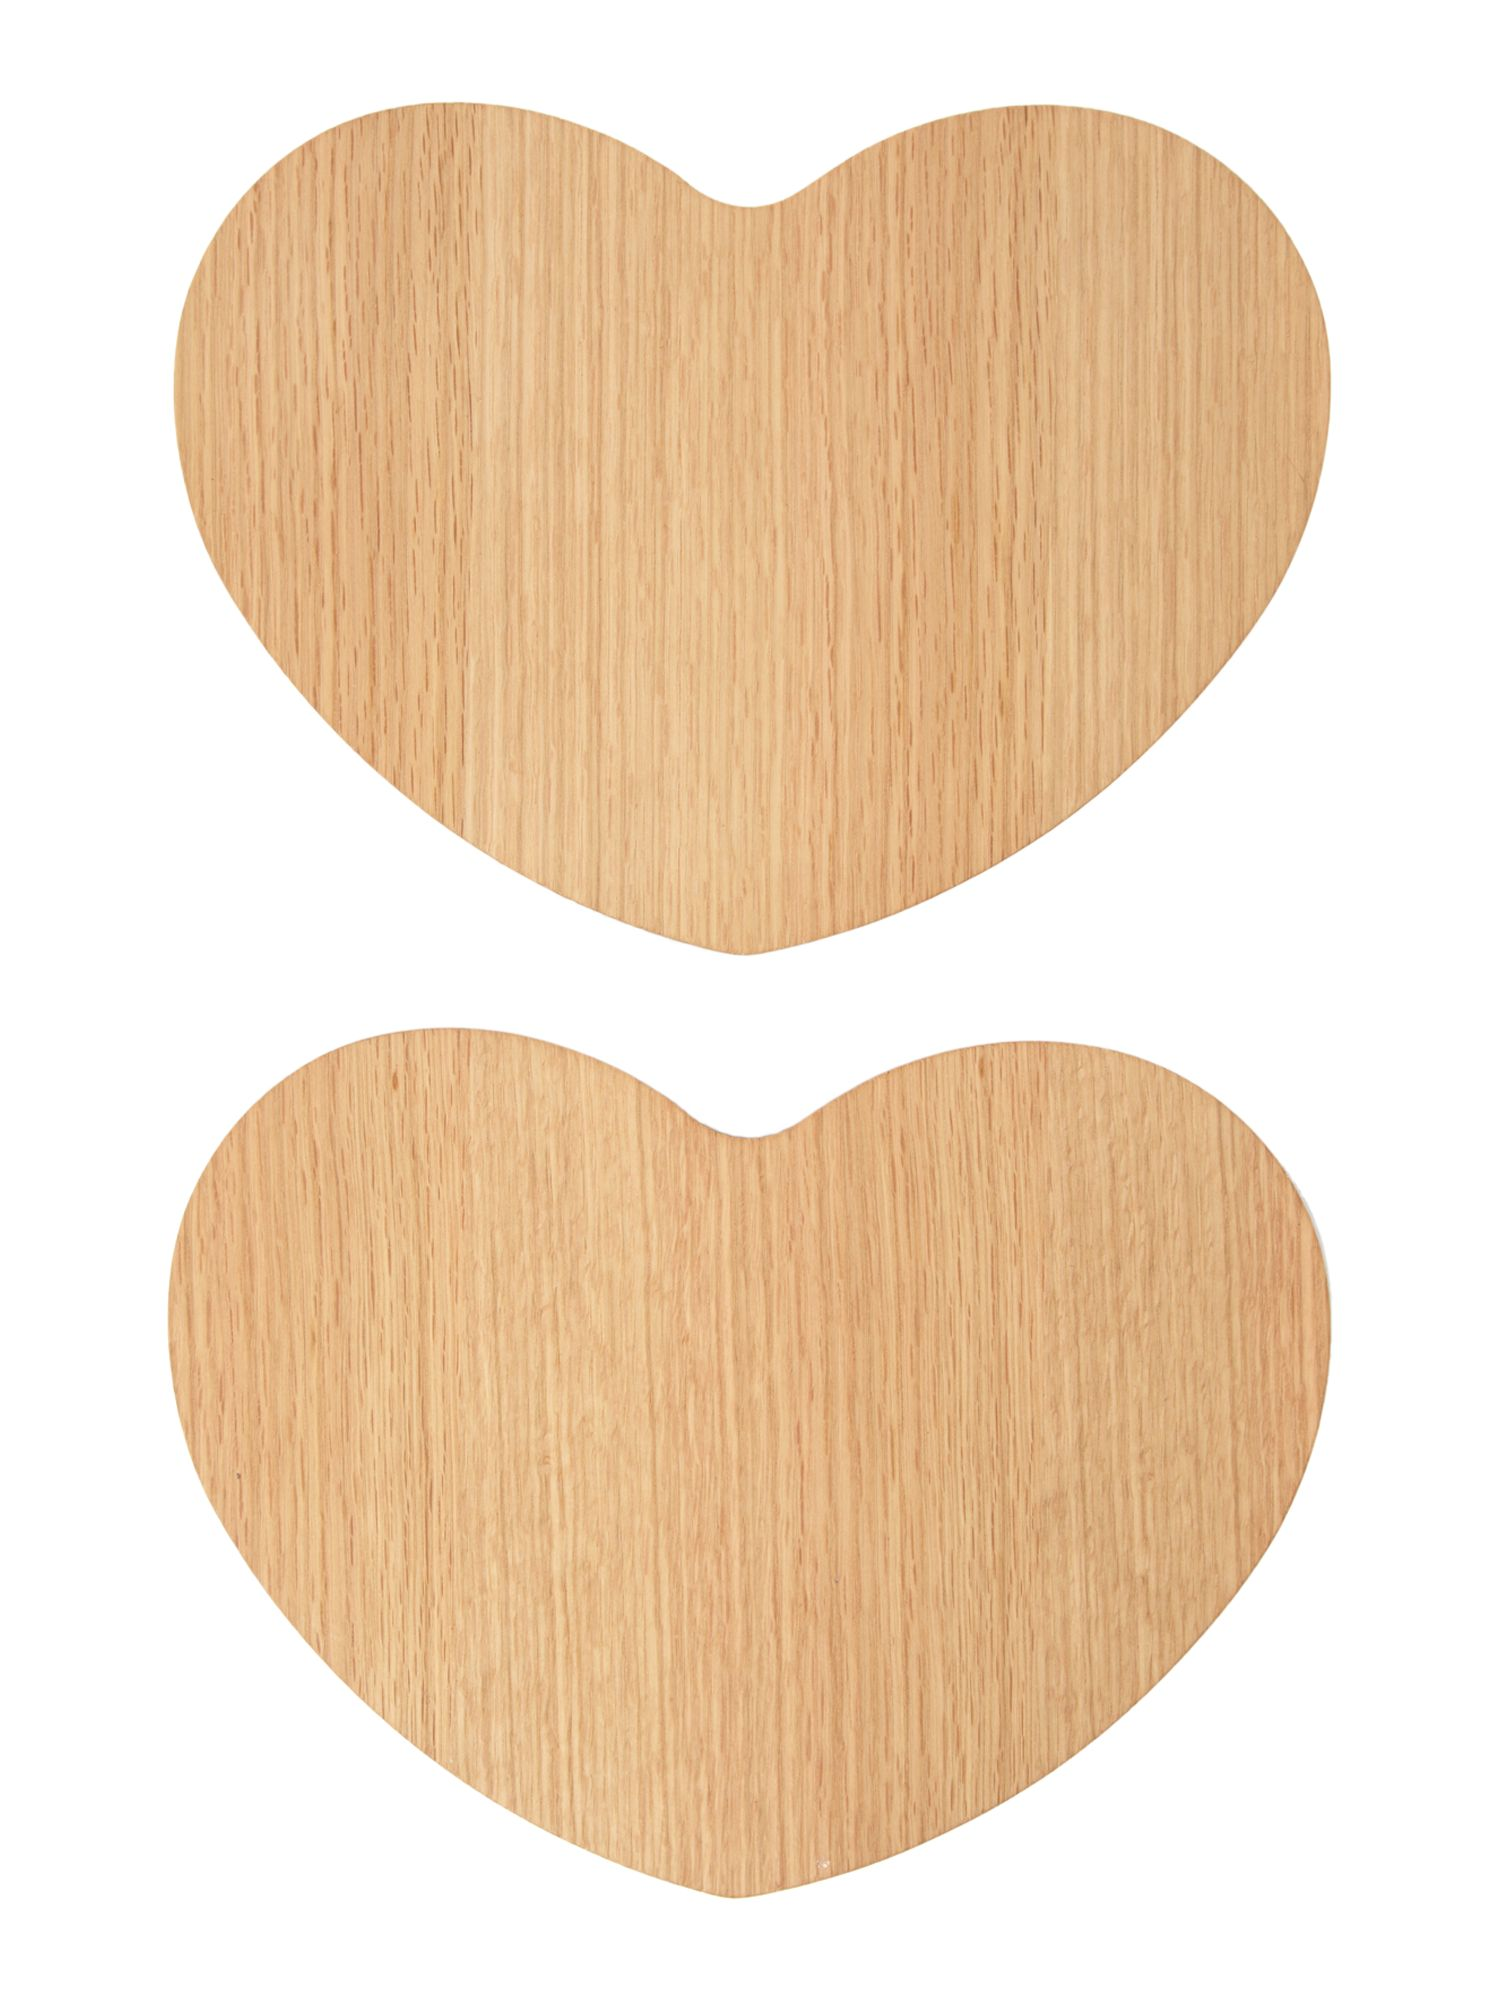 Scandi oak heart placemats set of 2